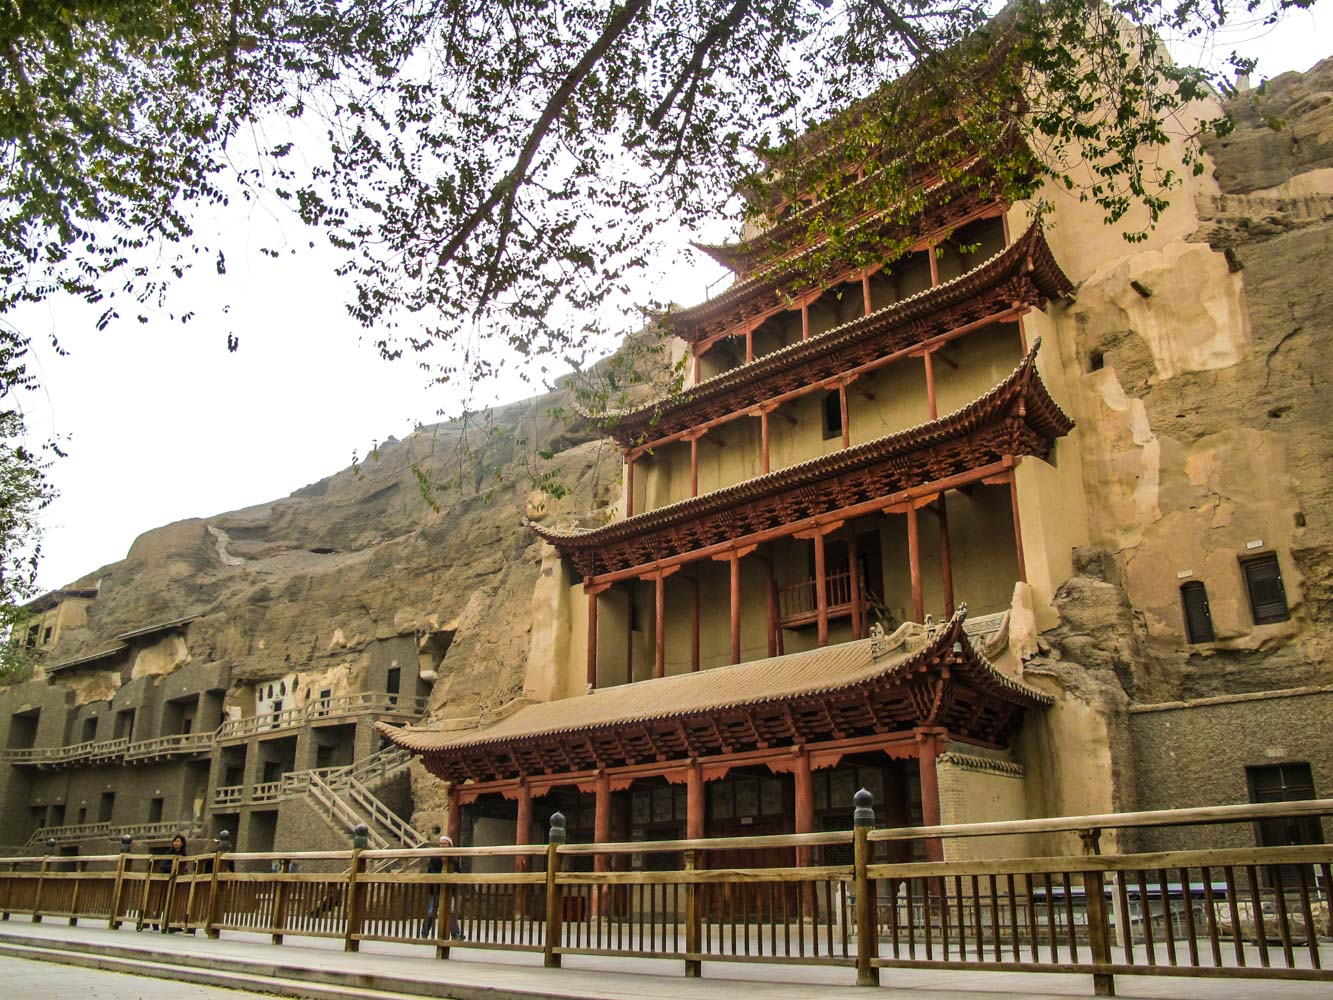 The outside of the Mogao Caves, the´s no photos allowed inside the caves, Dunhuang